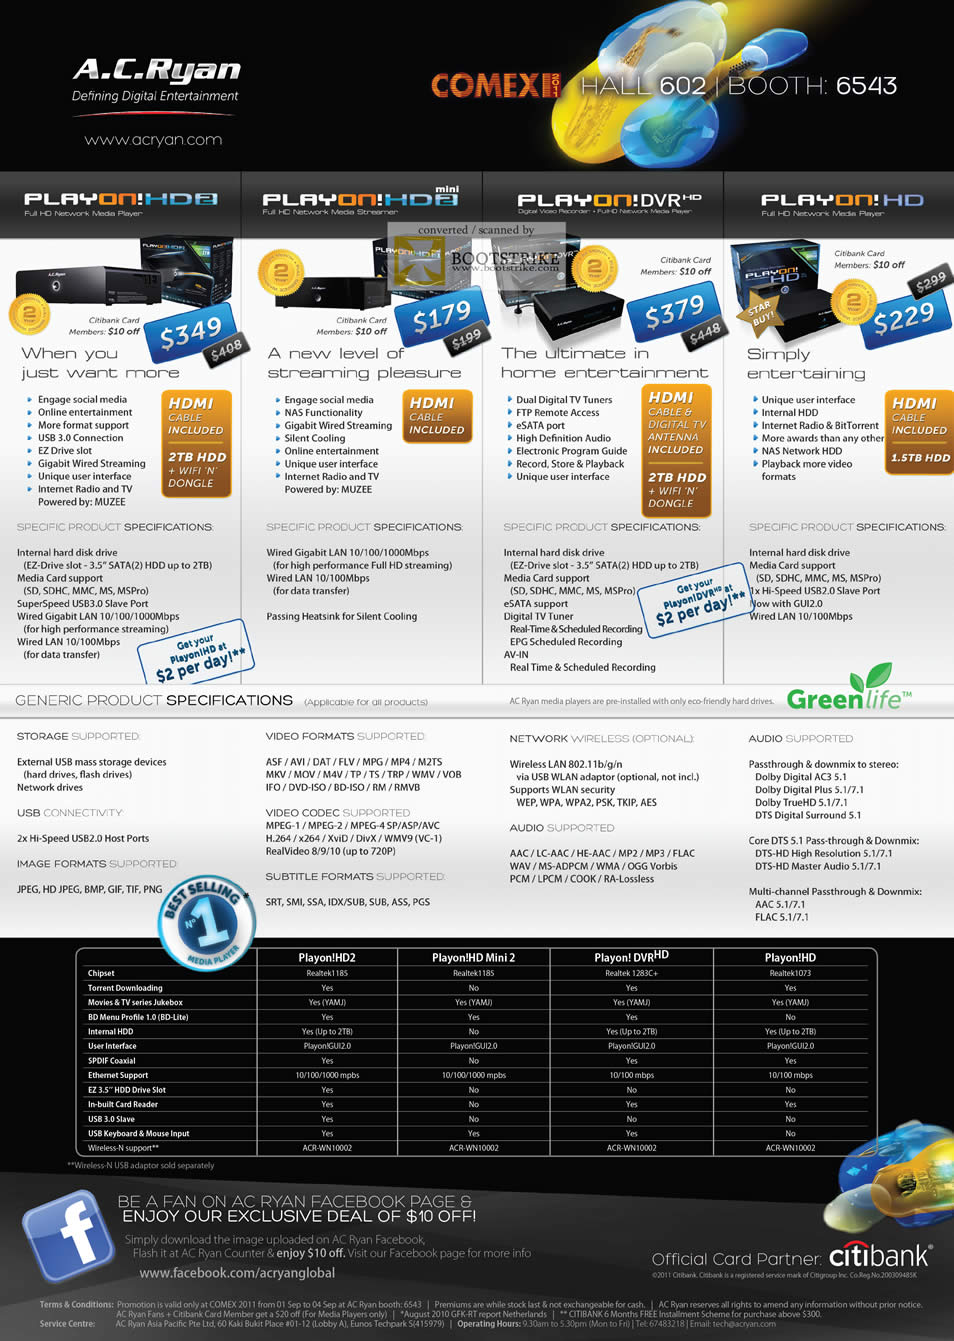 COMEX 2011 price list image brochure of AC Ryan Media Player Playon HD2 Mini DVR HD